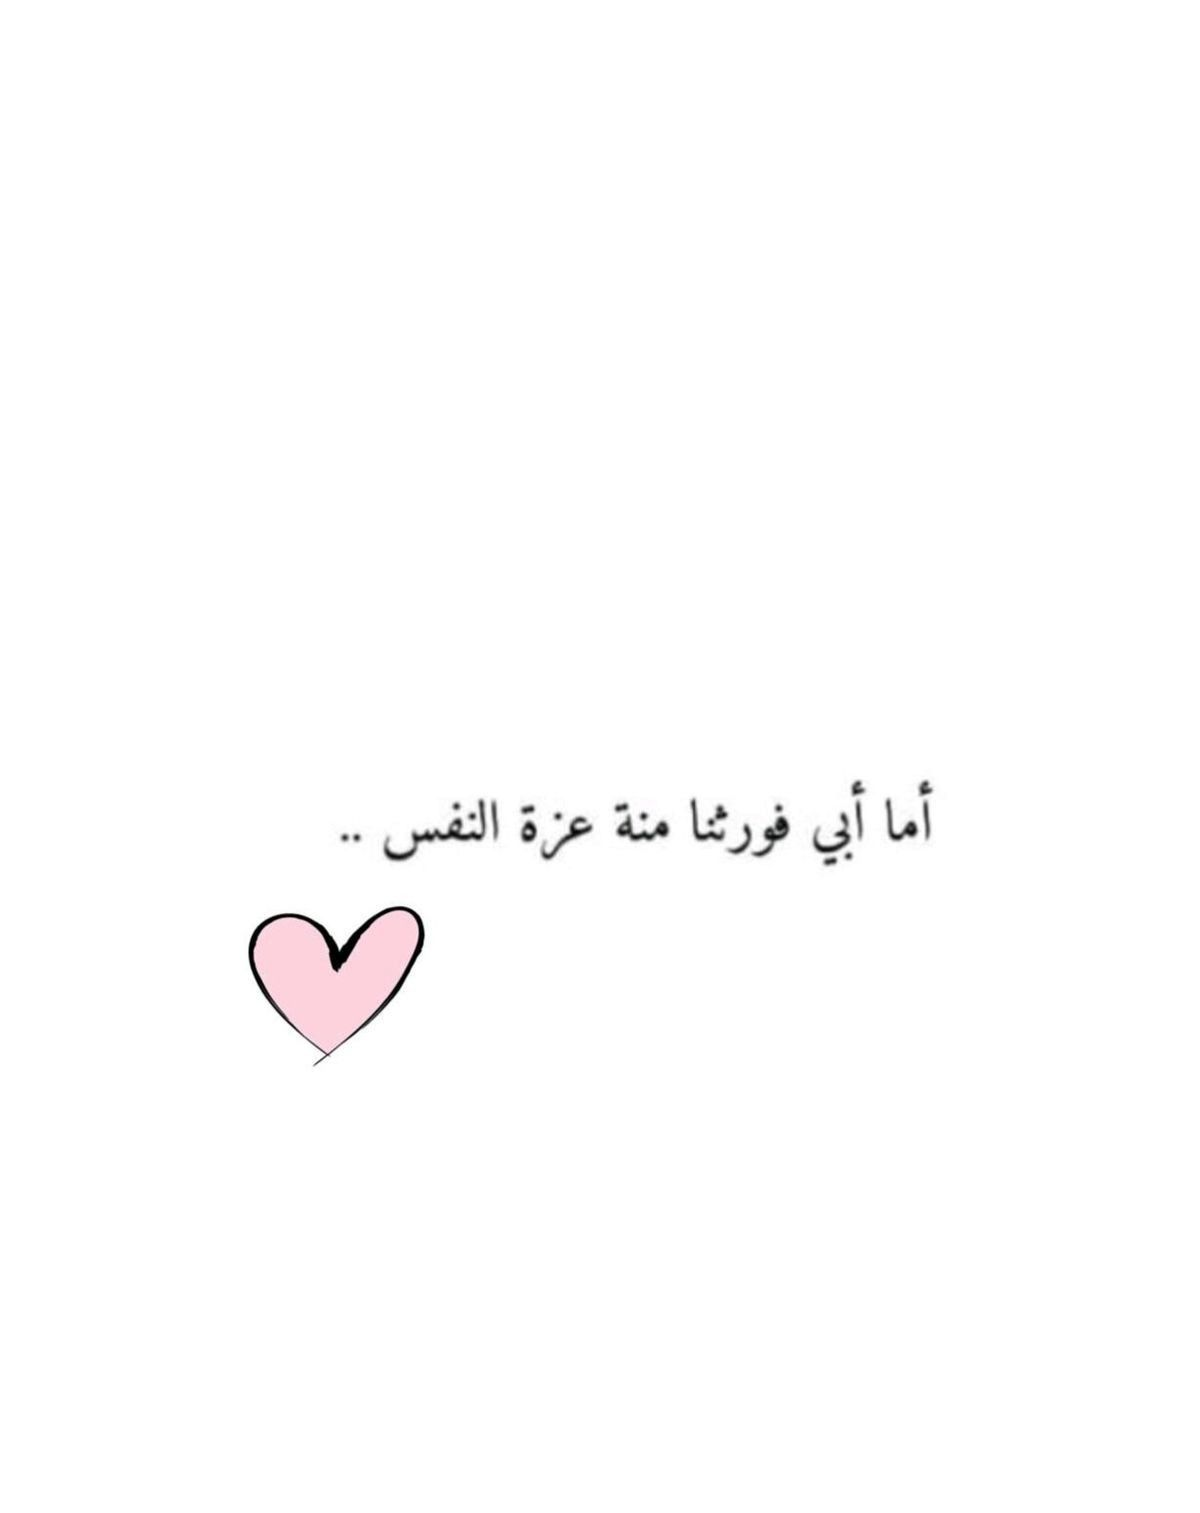 Pin By Asmaa Lababidy On اعمال يدوية Iphone Wallpaper Quotes Love Dad Quotes Arabic Quotes